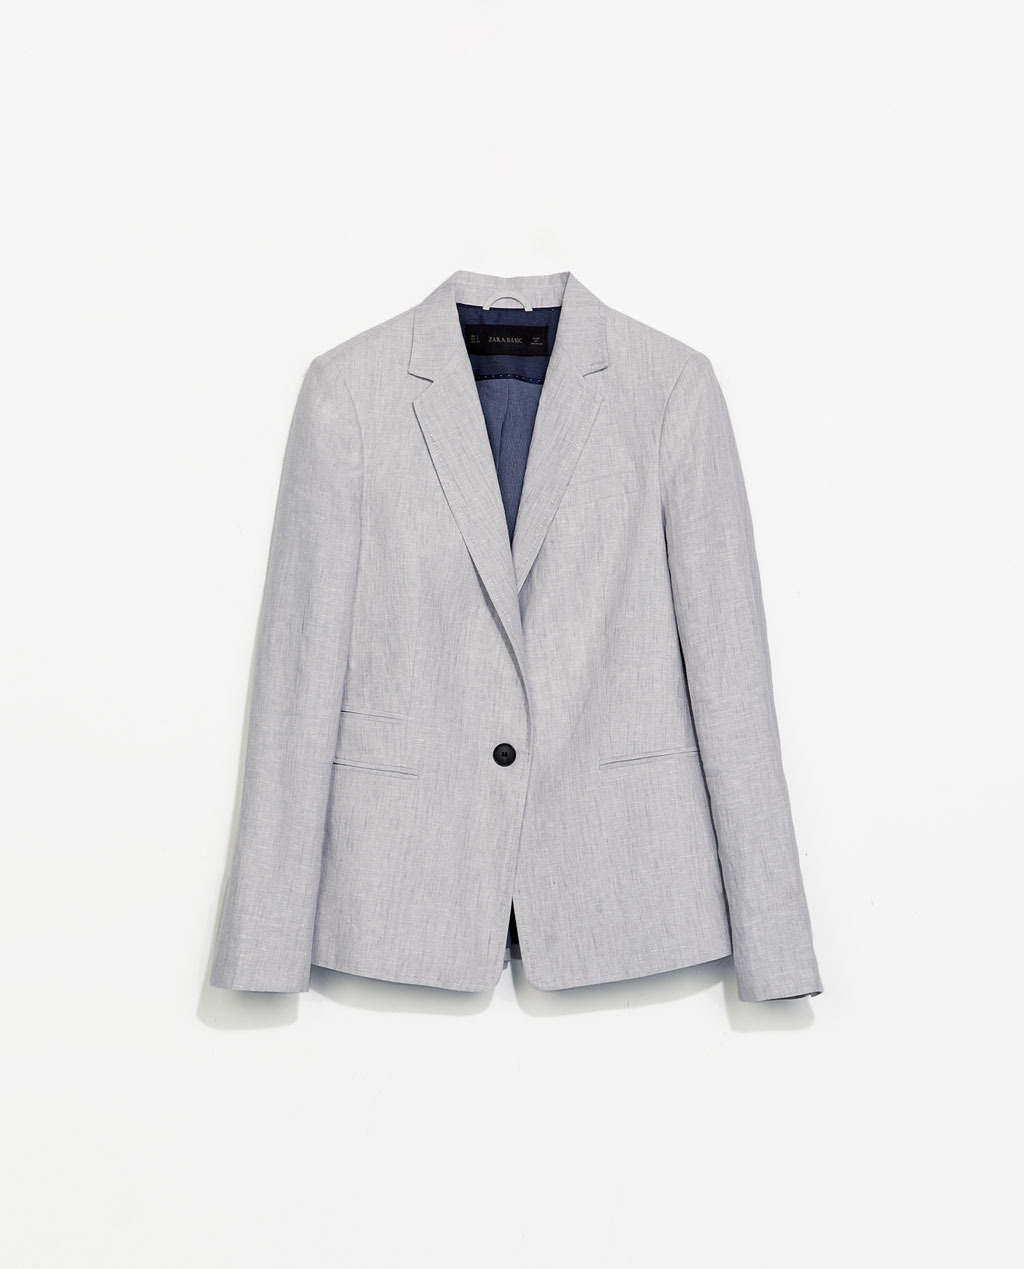 Linen Blazer - pattern: plain; style: single breasted blazer; collar: standard lapel/rever collar; predominant colour: light grey; occasions: evening, work, occasion, creative work; length: standard; fit: tailored/fitted; fibres: linen - 100%; sleeve length: long sleeve; sleeve style: standard; texture group: linen; collar break: medium; pattern type: fabric; season: s/s 2014